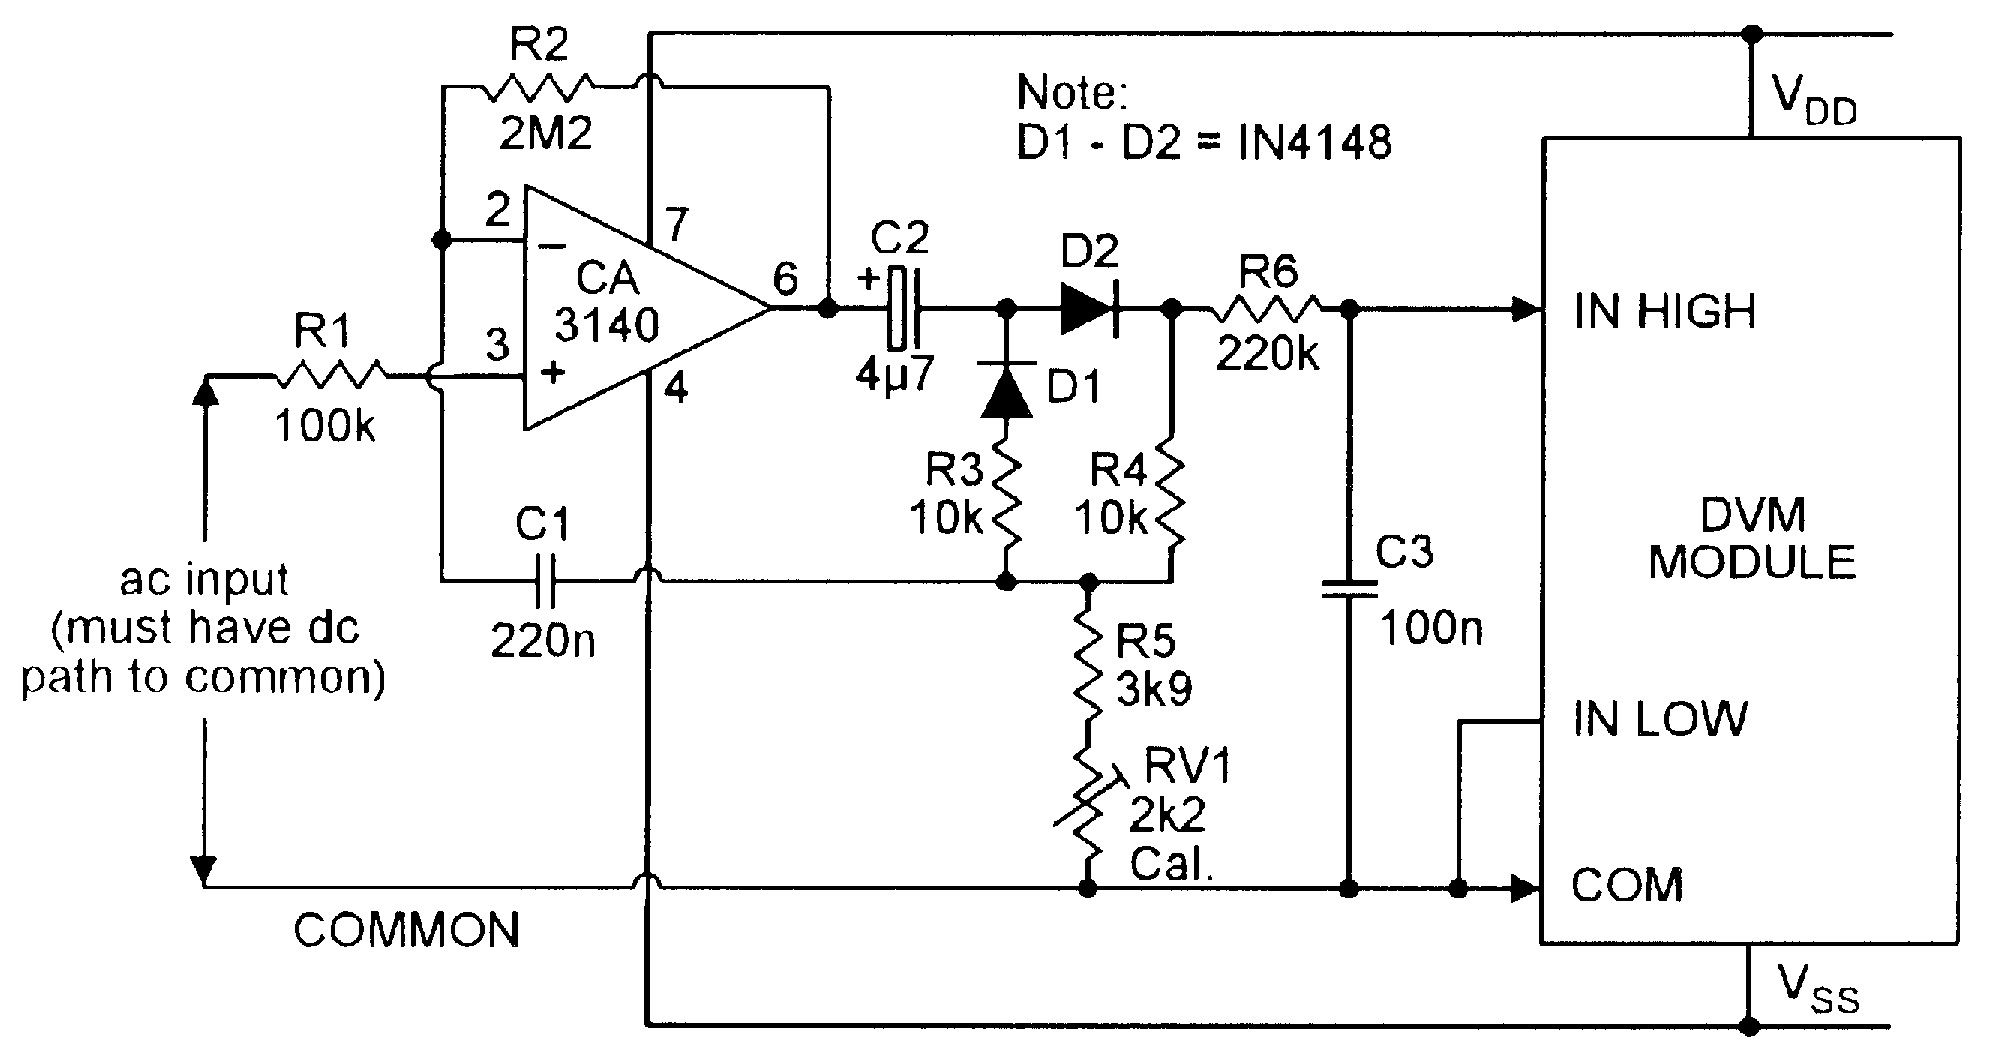 acdc converter circuit diagram electronic circuit diagrams wiring ac dc converter for use with dvm module [ 1995 x 1059 Pixel ]